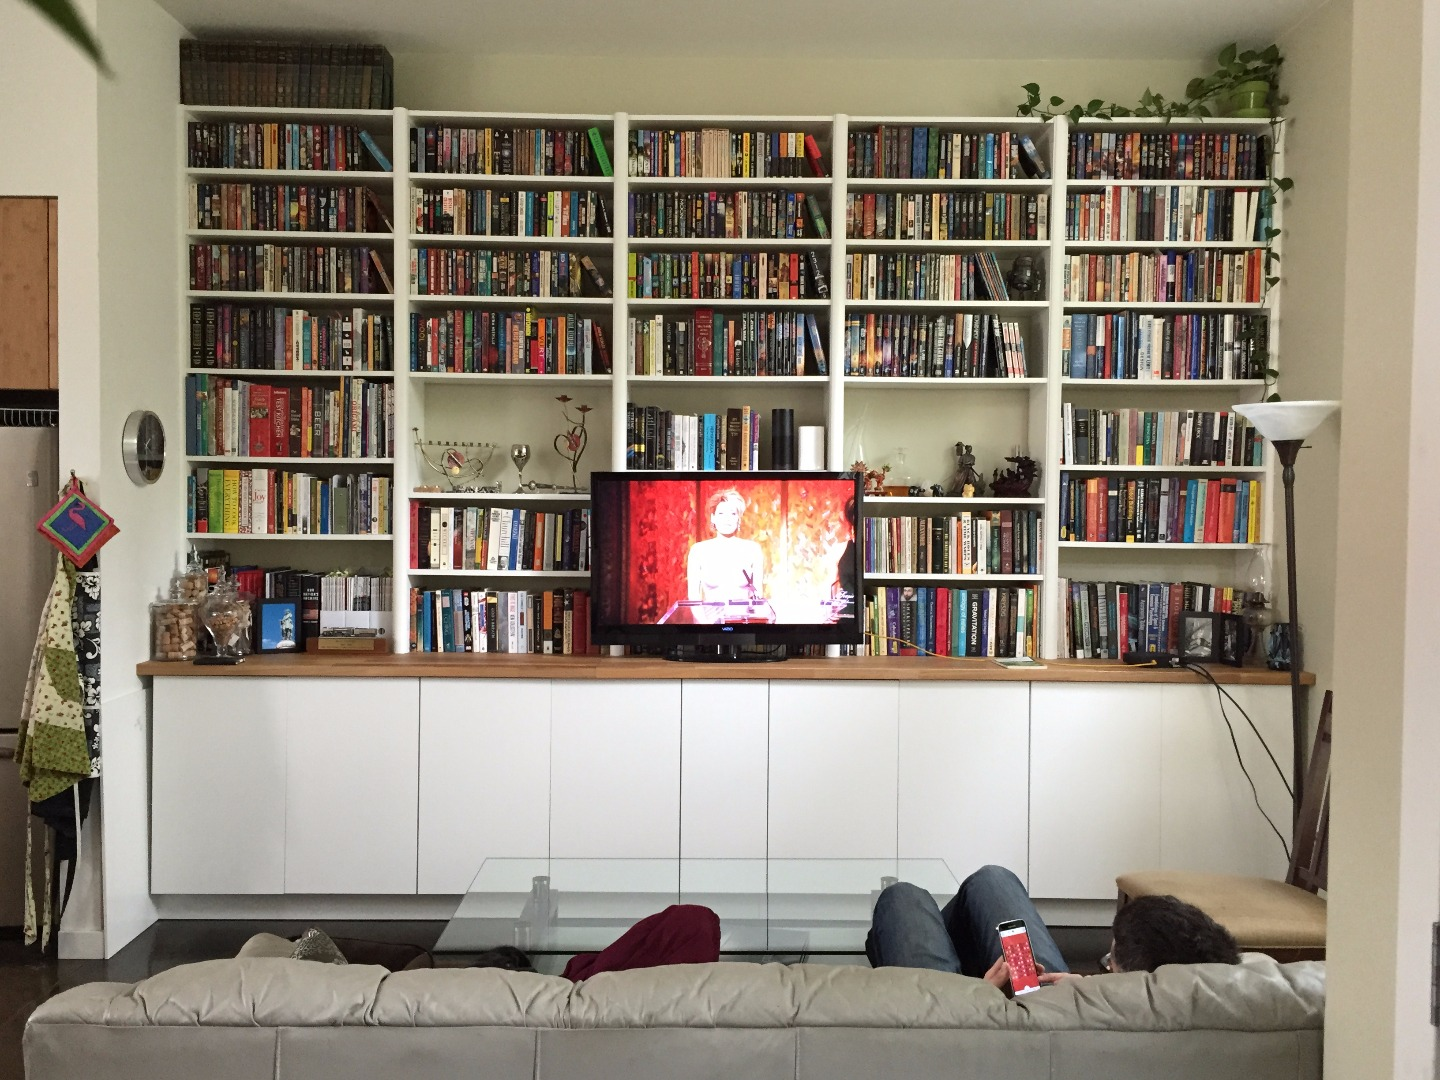 Picture of IKEA Hack: Built-in Cabinets and Bookshelves